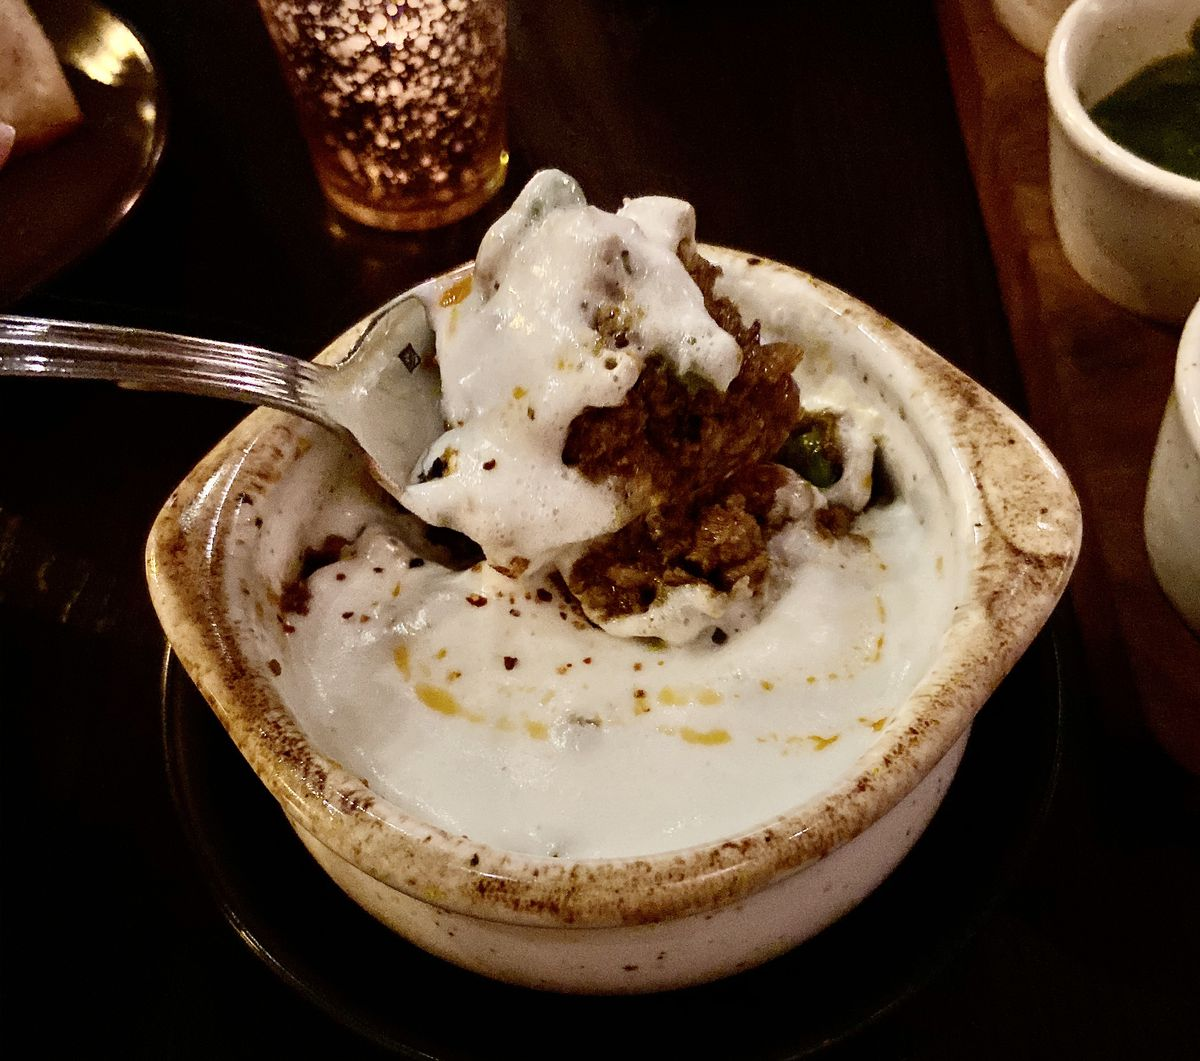 A spoon lifts ground spiced lamb from under a layer of potato mousse in a ceramic pot.